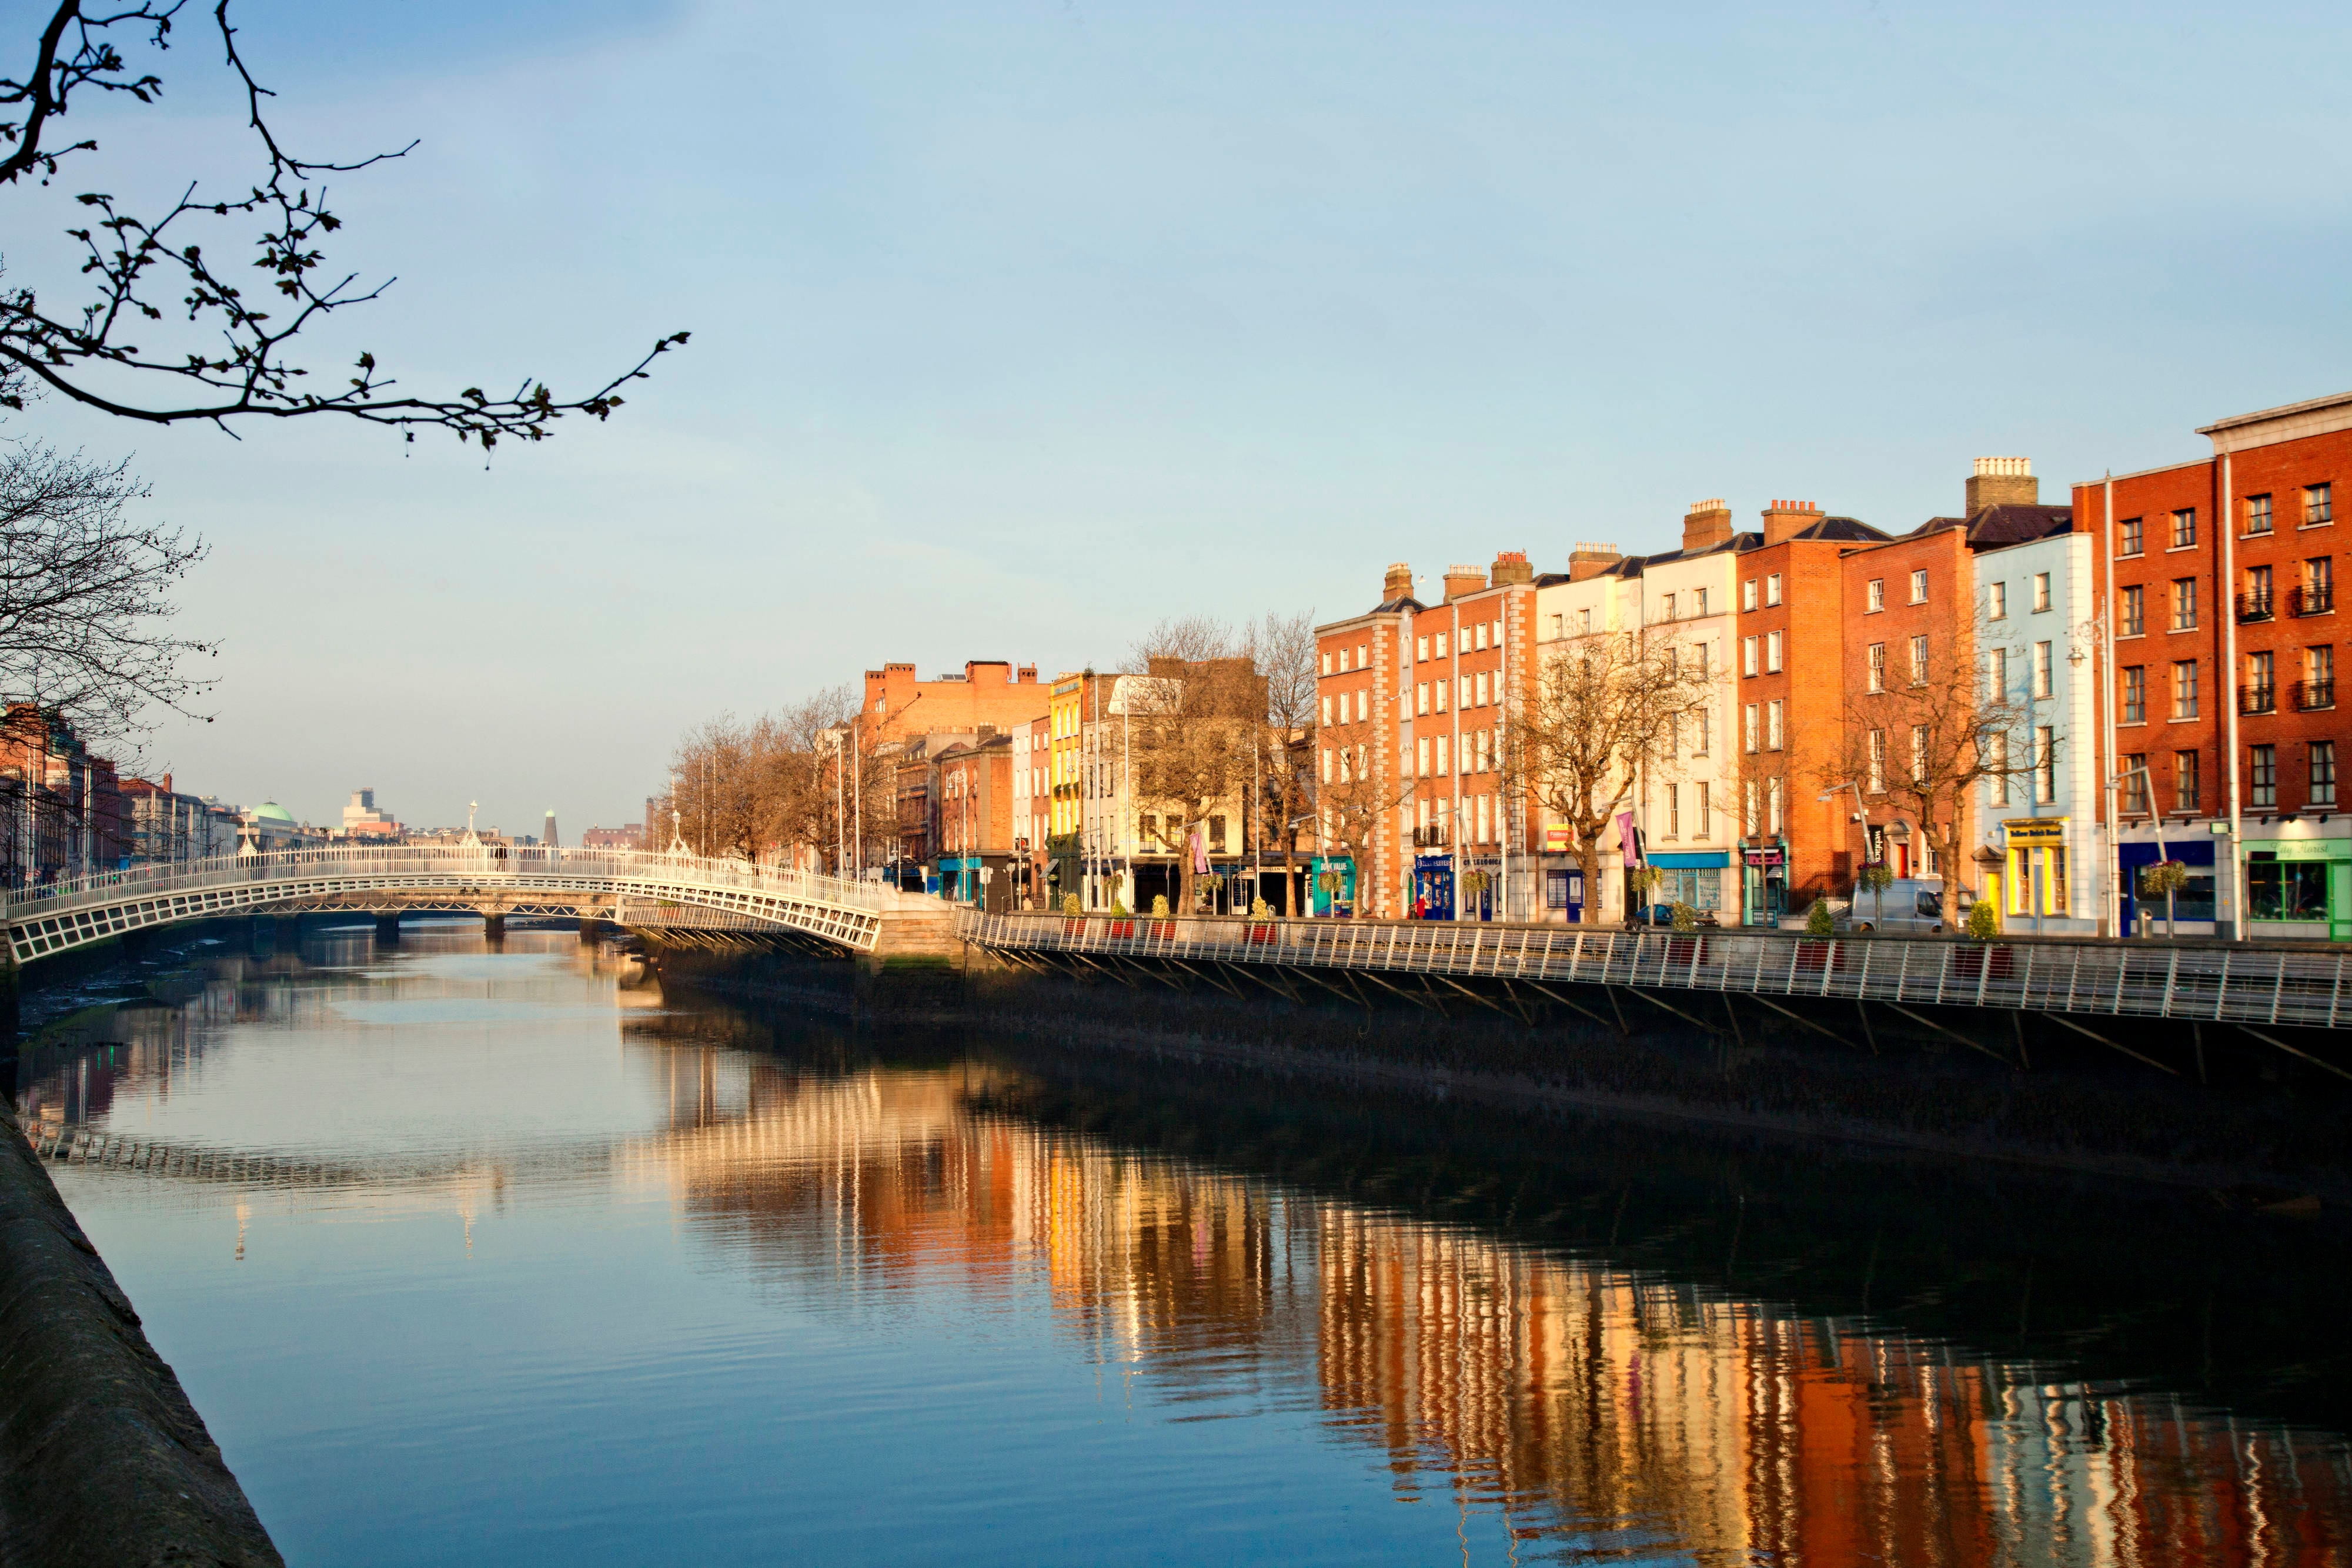 The Liffey and The Ha Penny Bridge